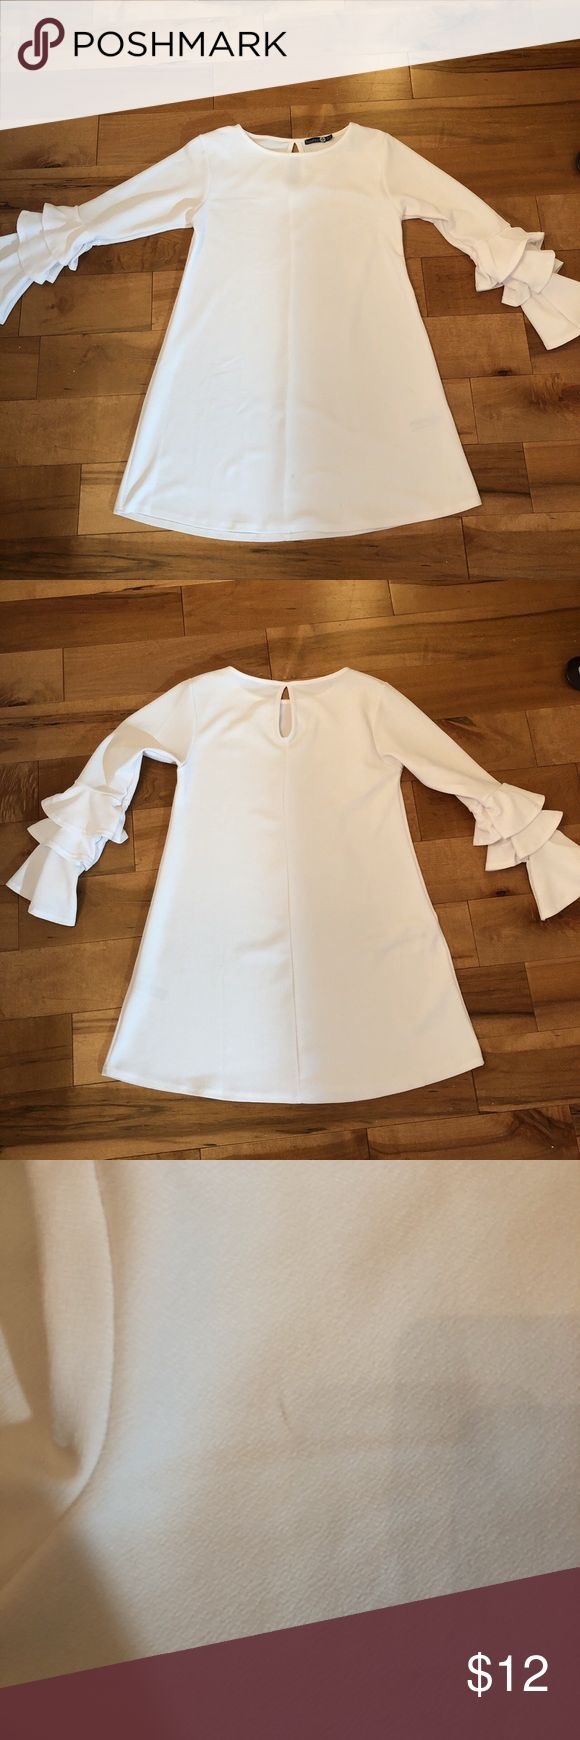 Boohoo plus white shift dress Size 12 US boohoo plus dress! White, shift, pretty ruffled sleeves. Very small stains that are barely noticeable and will probably come out with bleach. Worn once. Boohoo Plus Dresses Long Sleeve